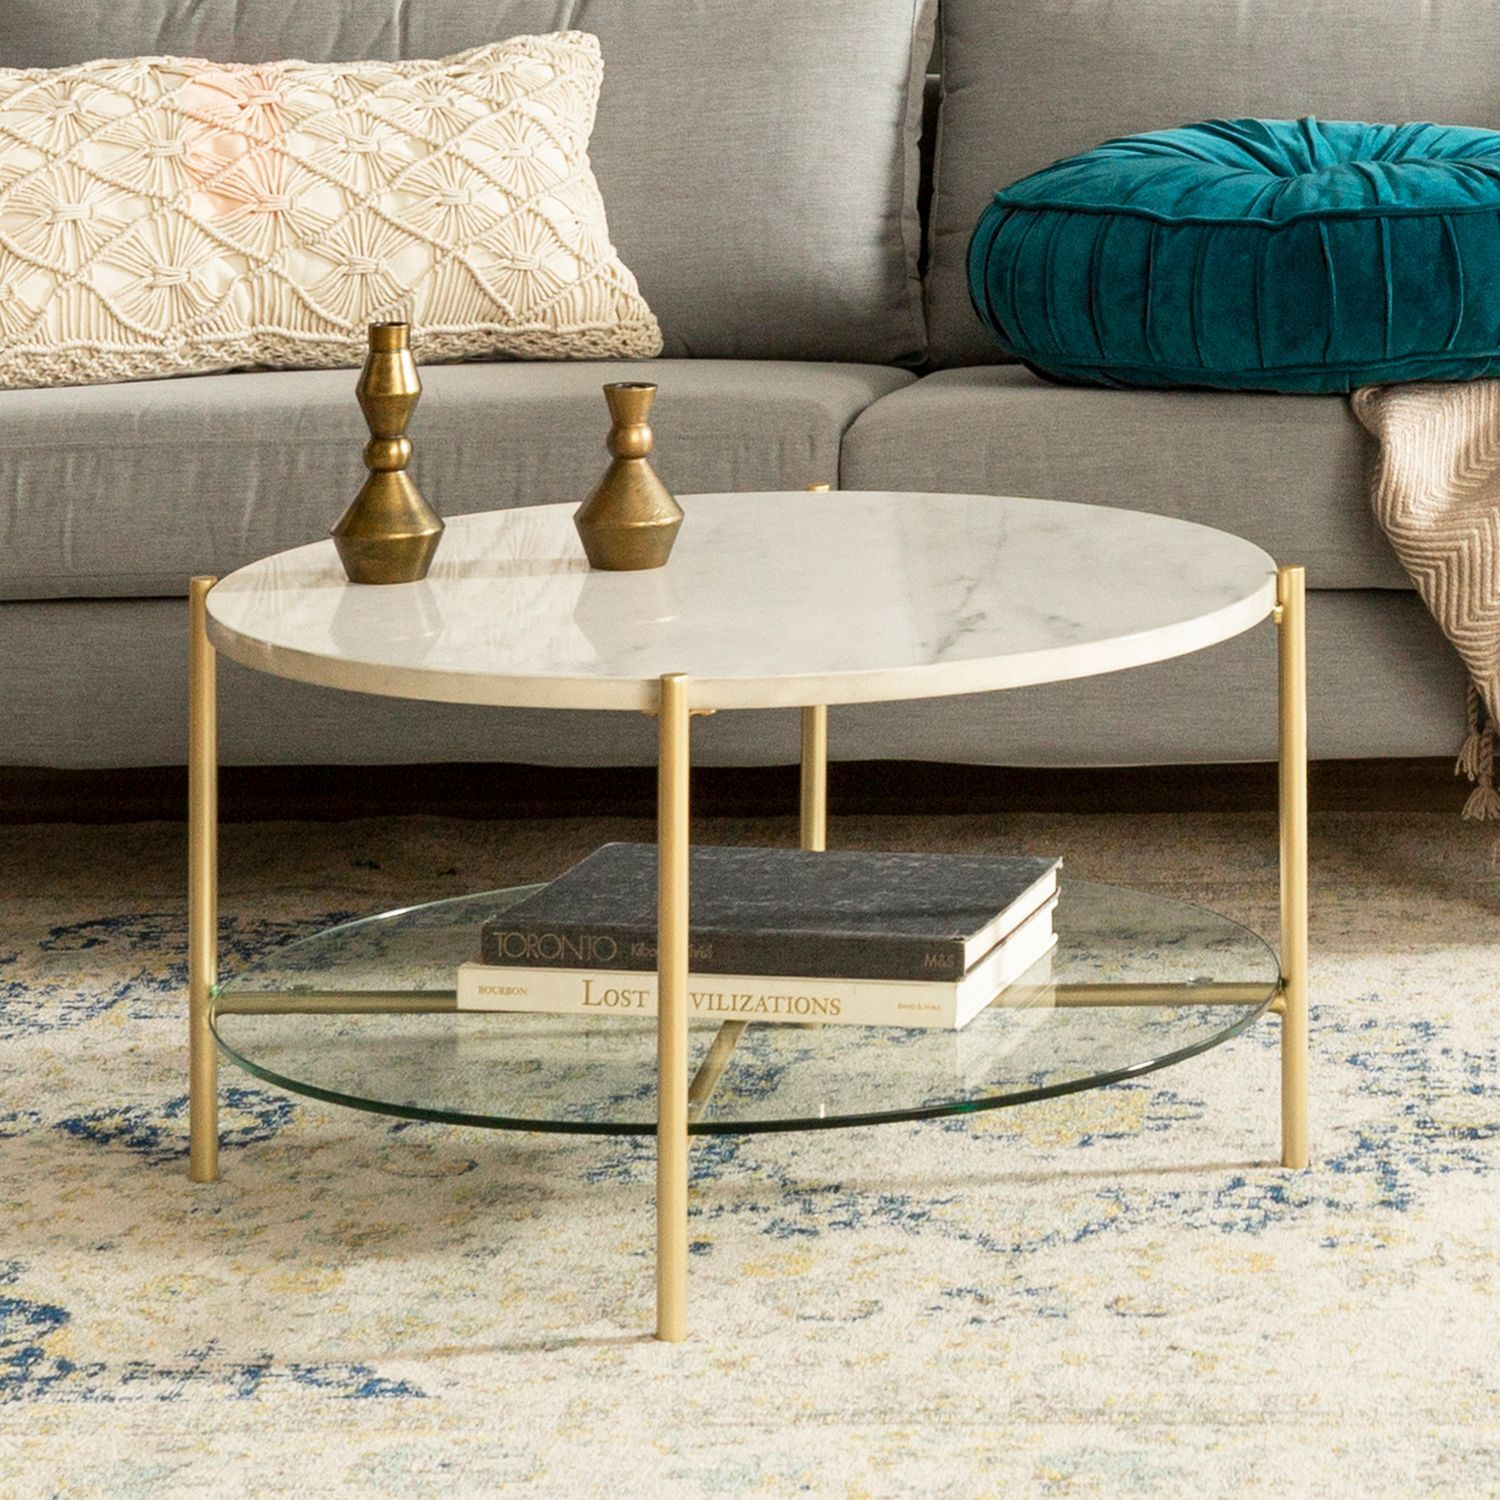 Round White Faux Marble Gold Coffee Table With Glass Shelf Pier 1 Imports Muebles Sala Muebles Para Tv Muebles [ 1500 x 1500 Pixel ]